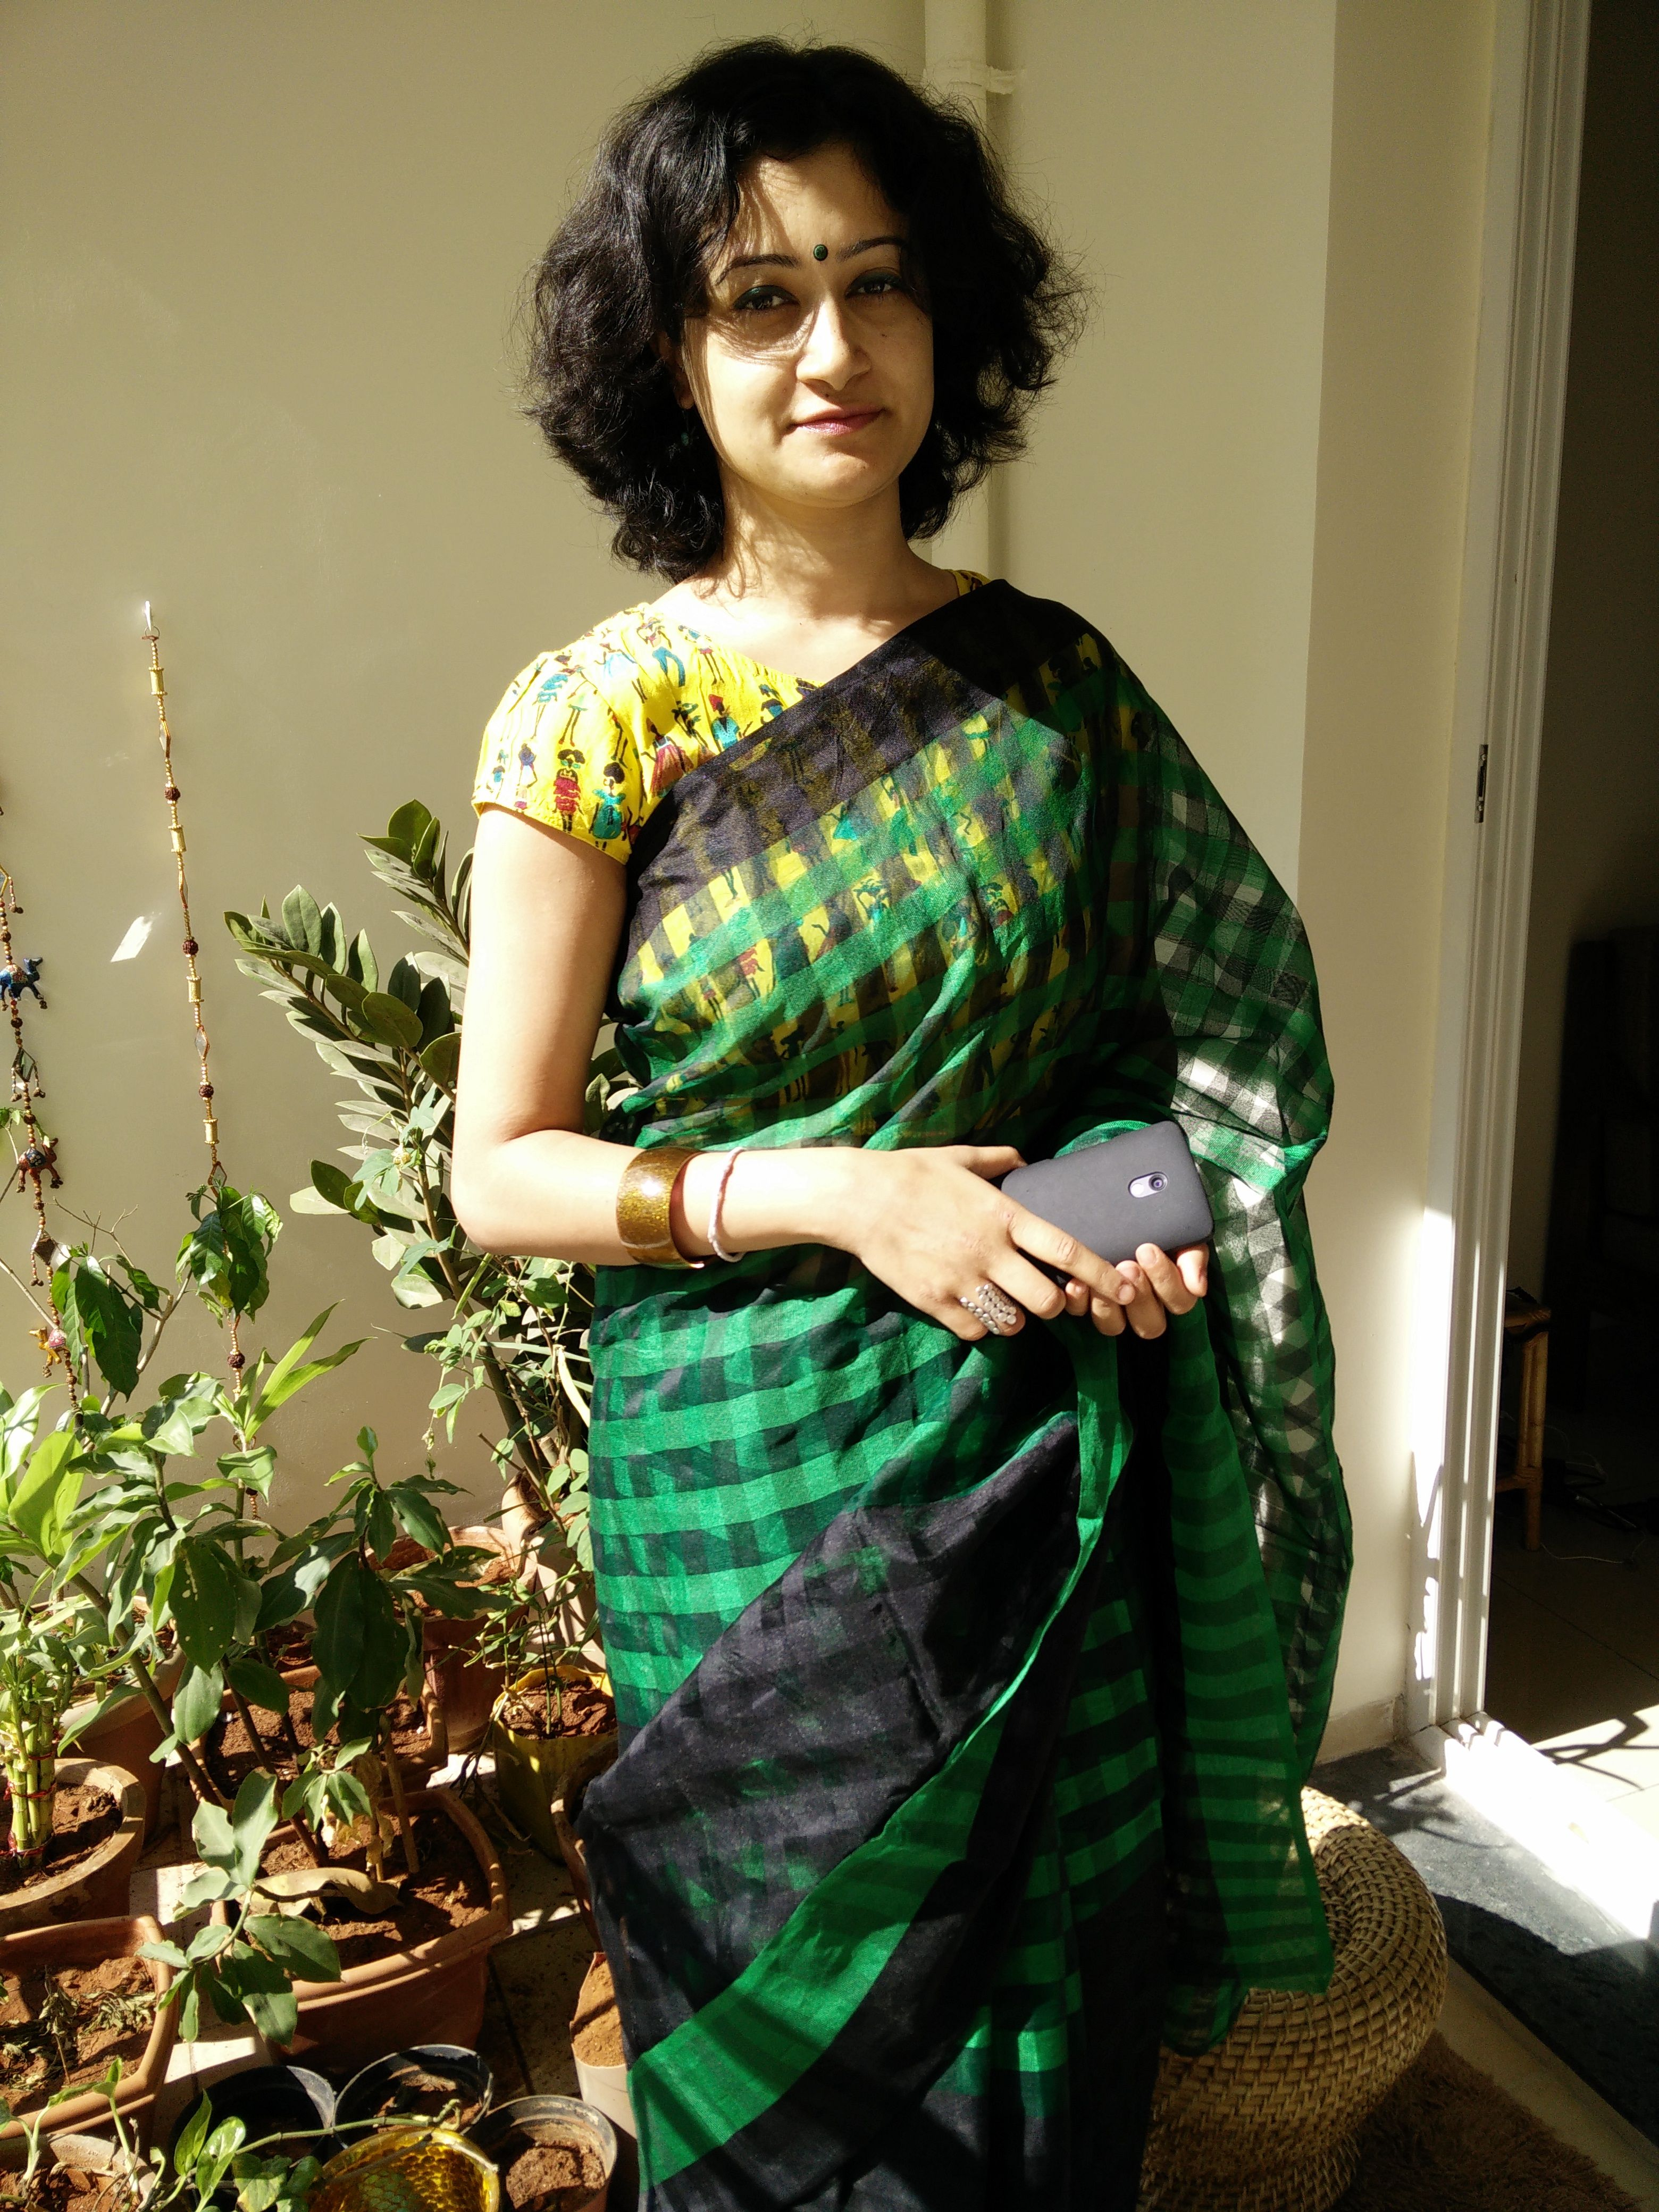 A chequered green and black saree with a contrasting yellow cropped top...The cropped top is fun as it has figurines in it.